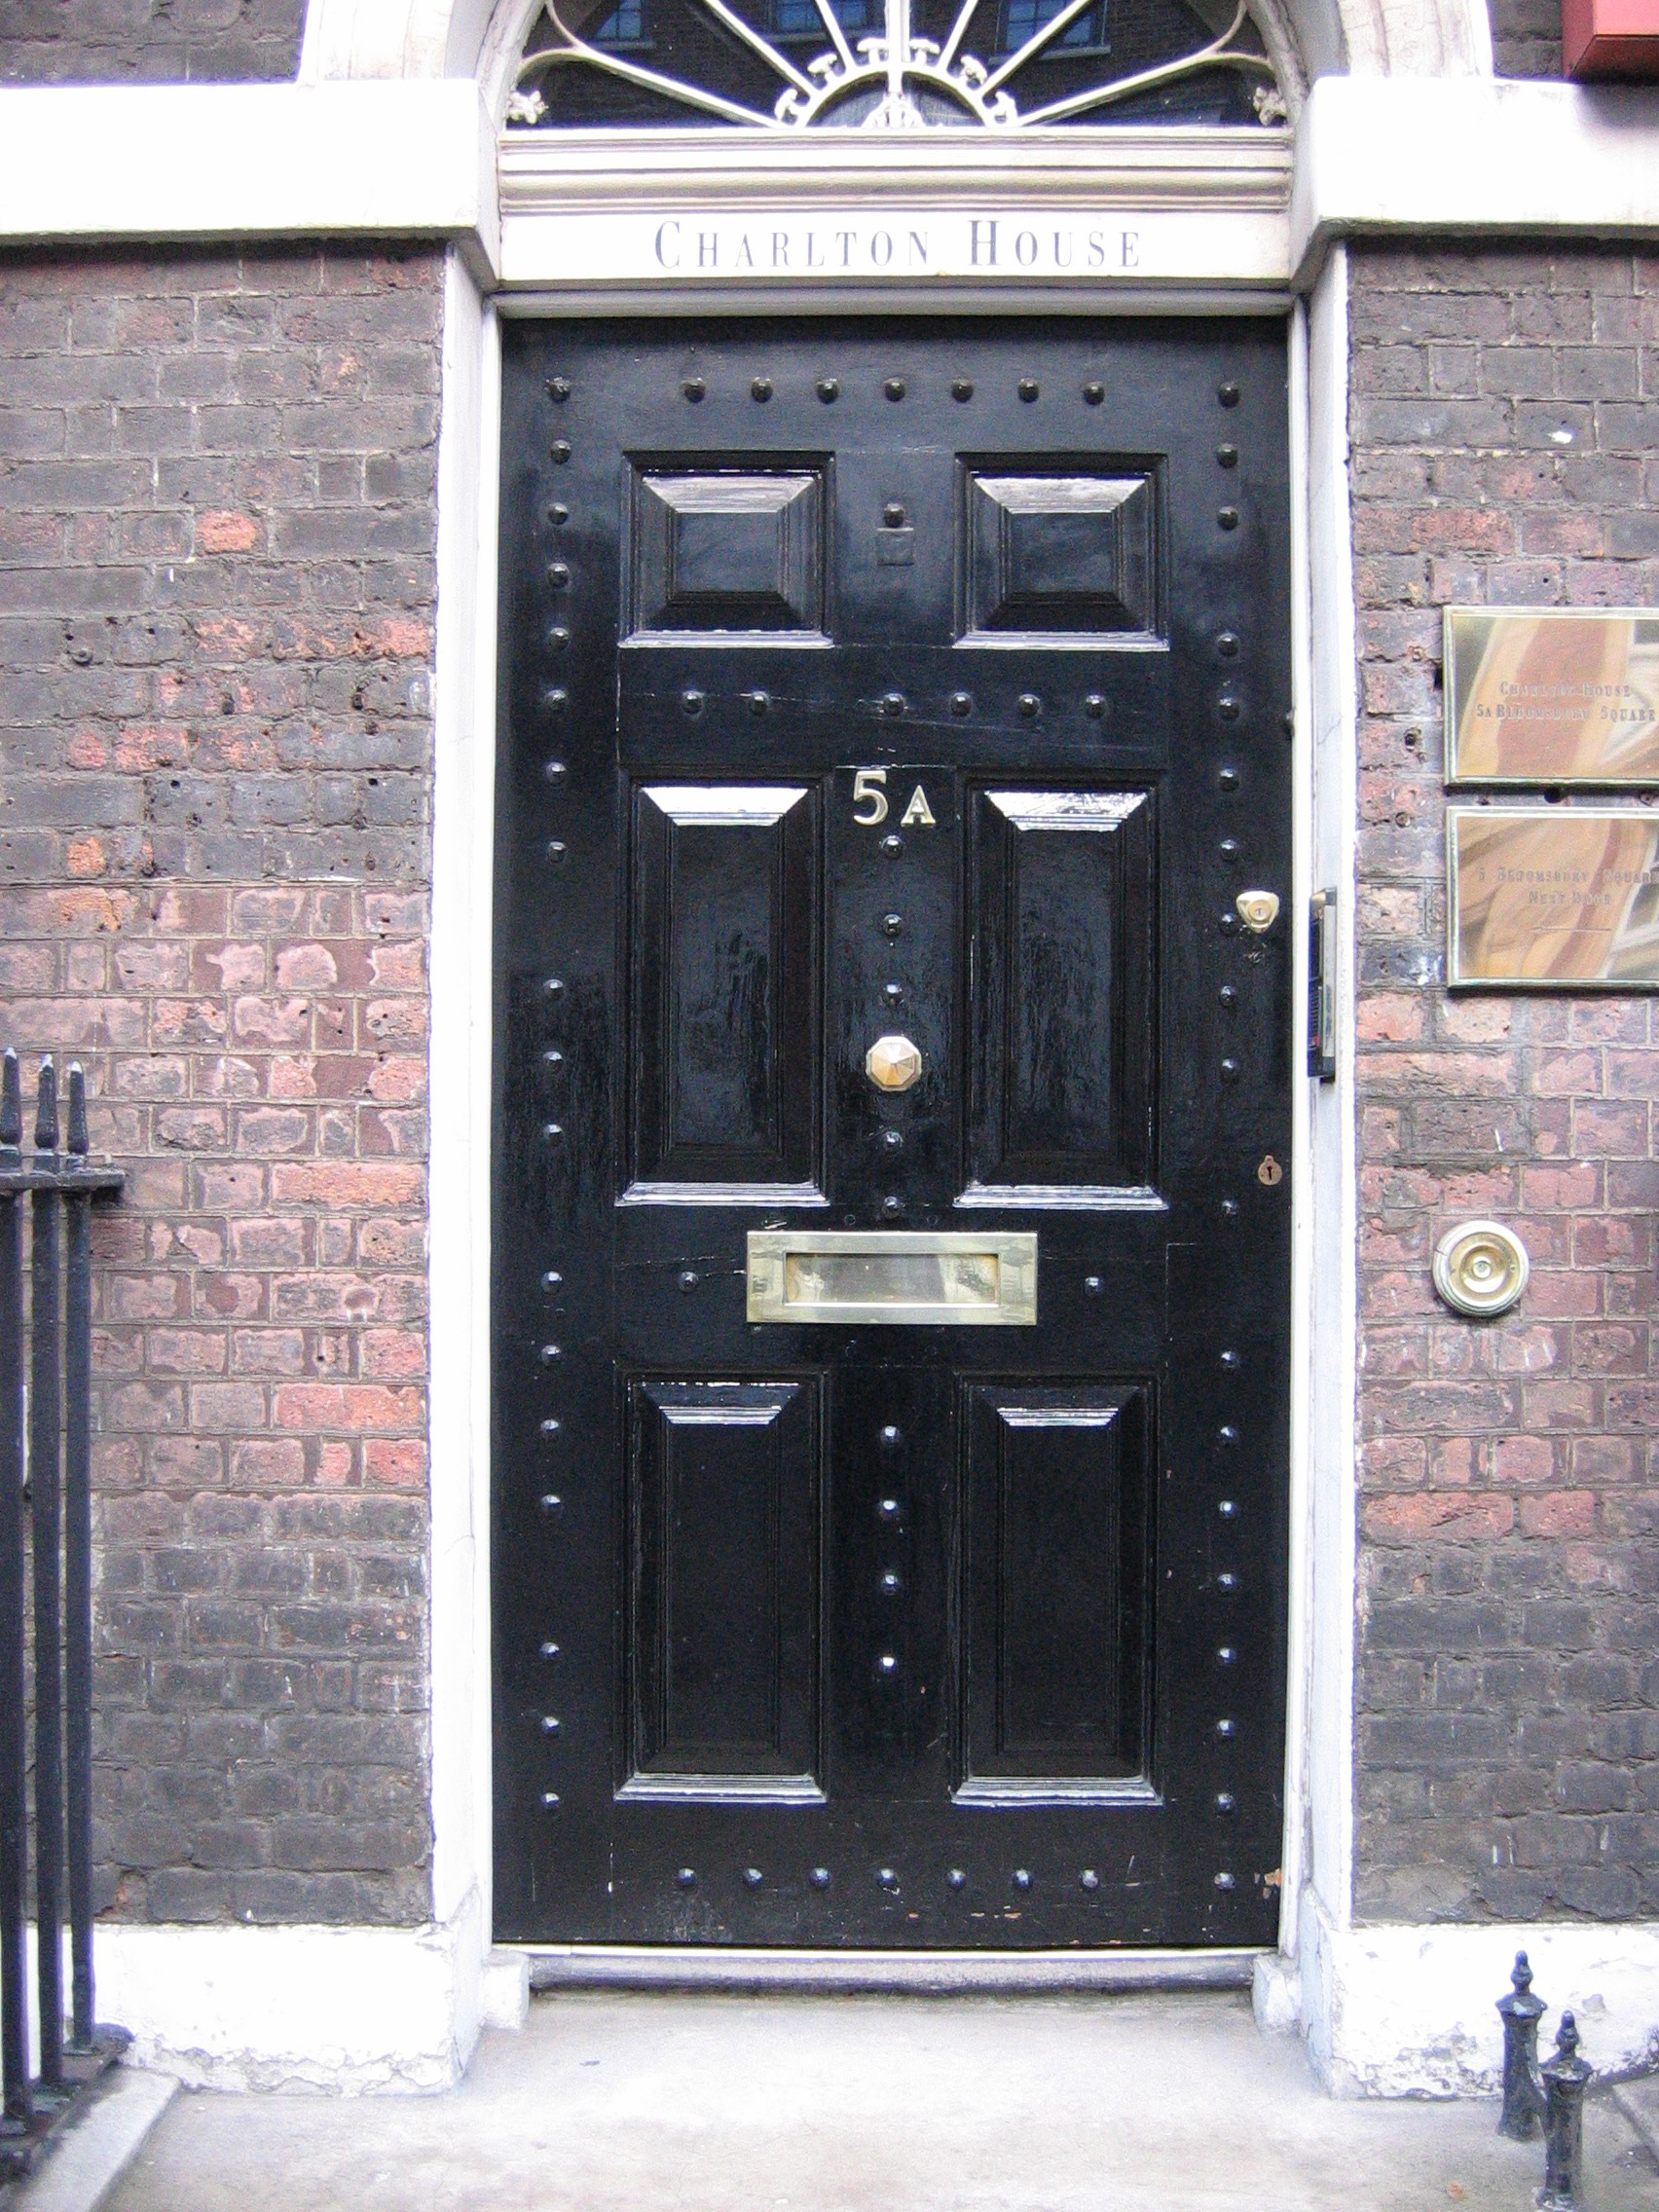 A mail slot letterbox at Charlton House, 5A Bloomsbury Square, London, located in the middle of the front door. Photo taken by Richard Smith on November 28, 2004.